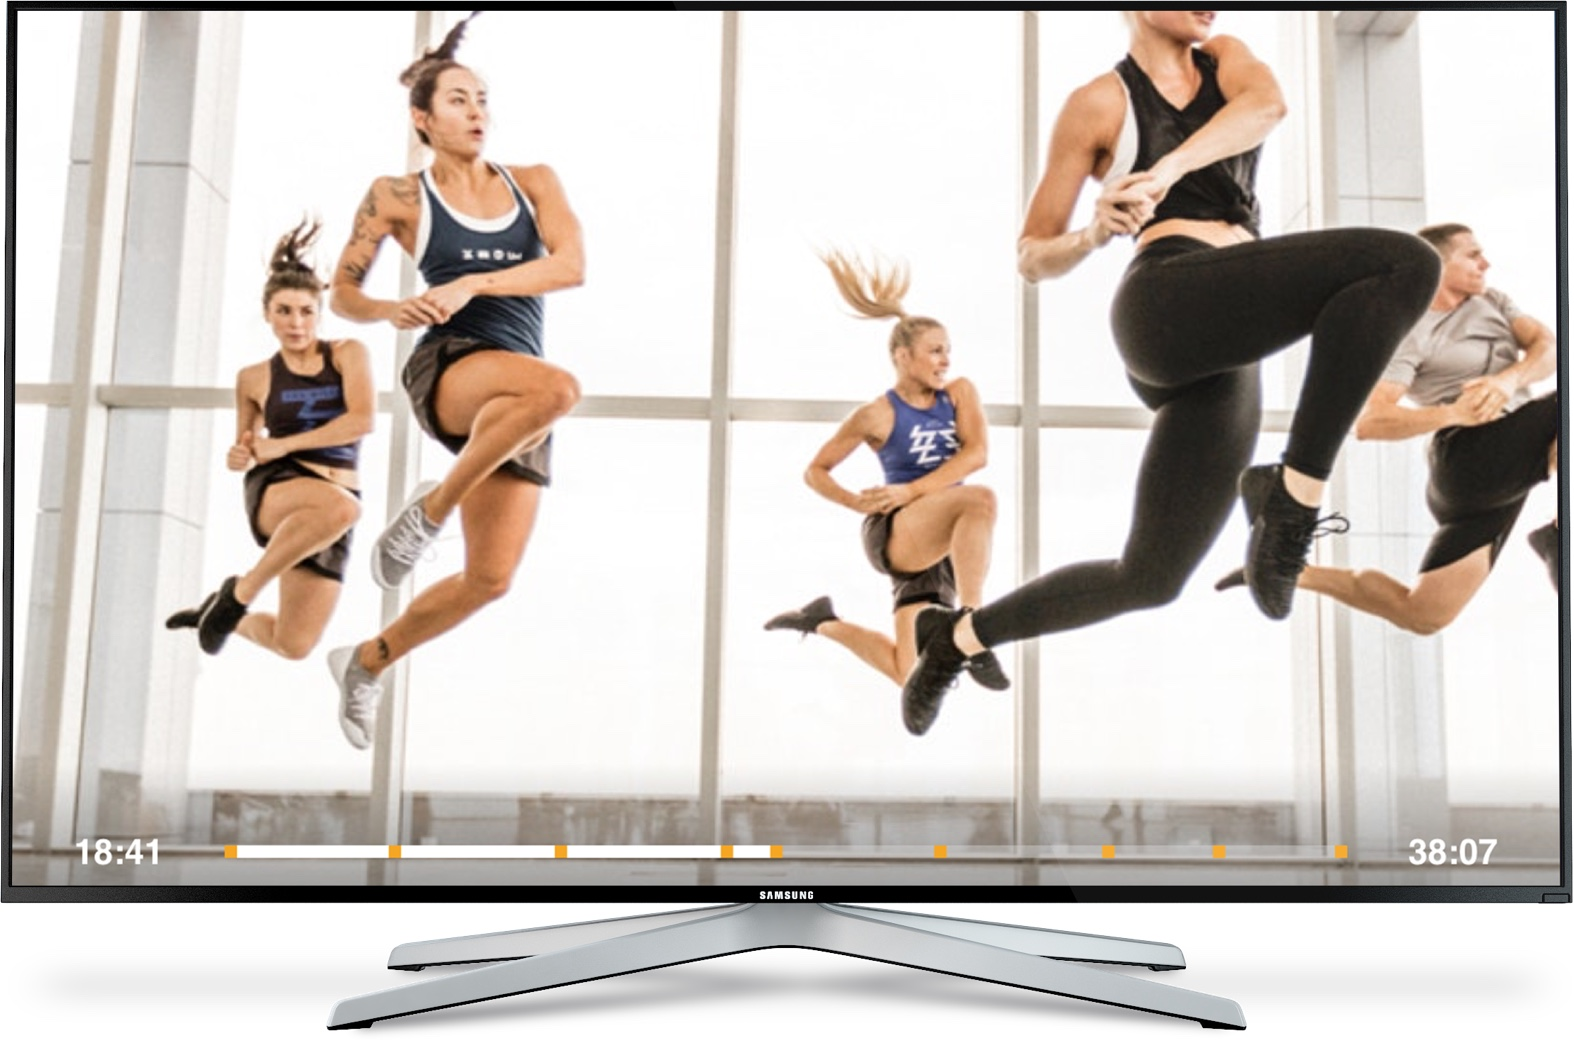 Image of Les Mills On Demand streaming video workout. 4 athletes exercising.